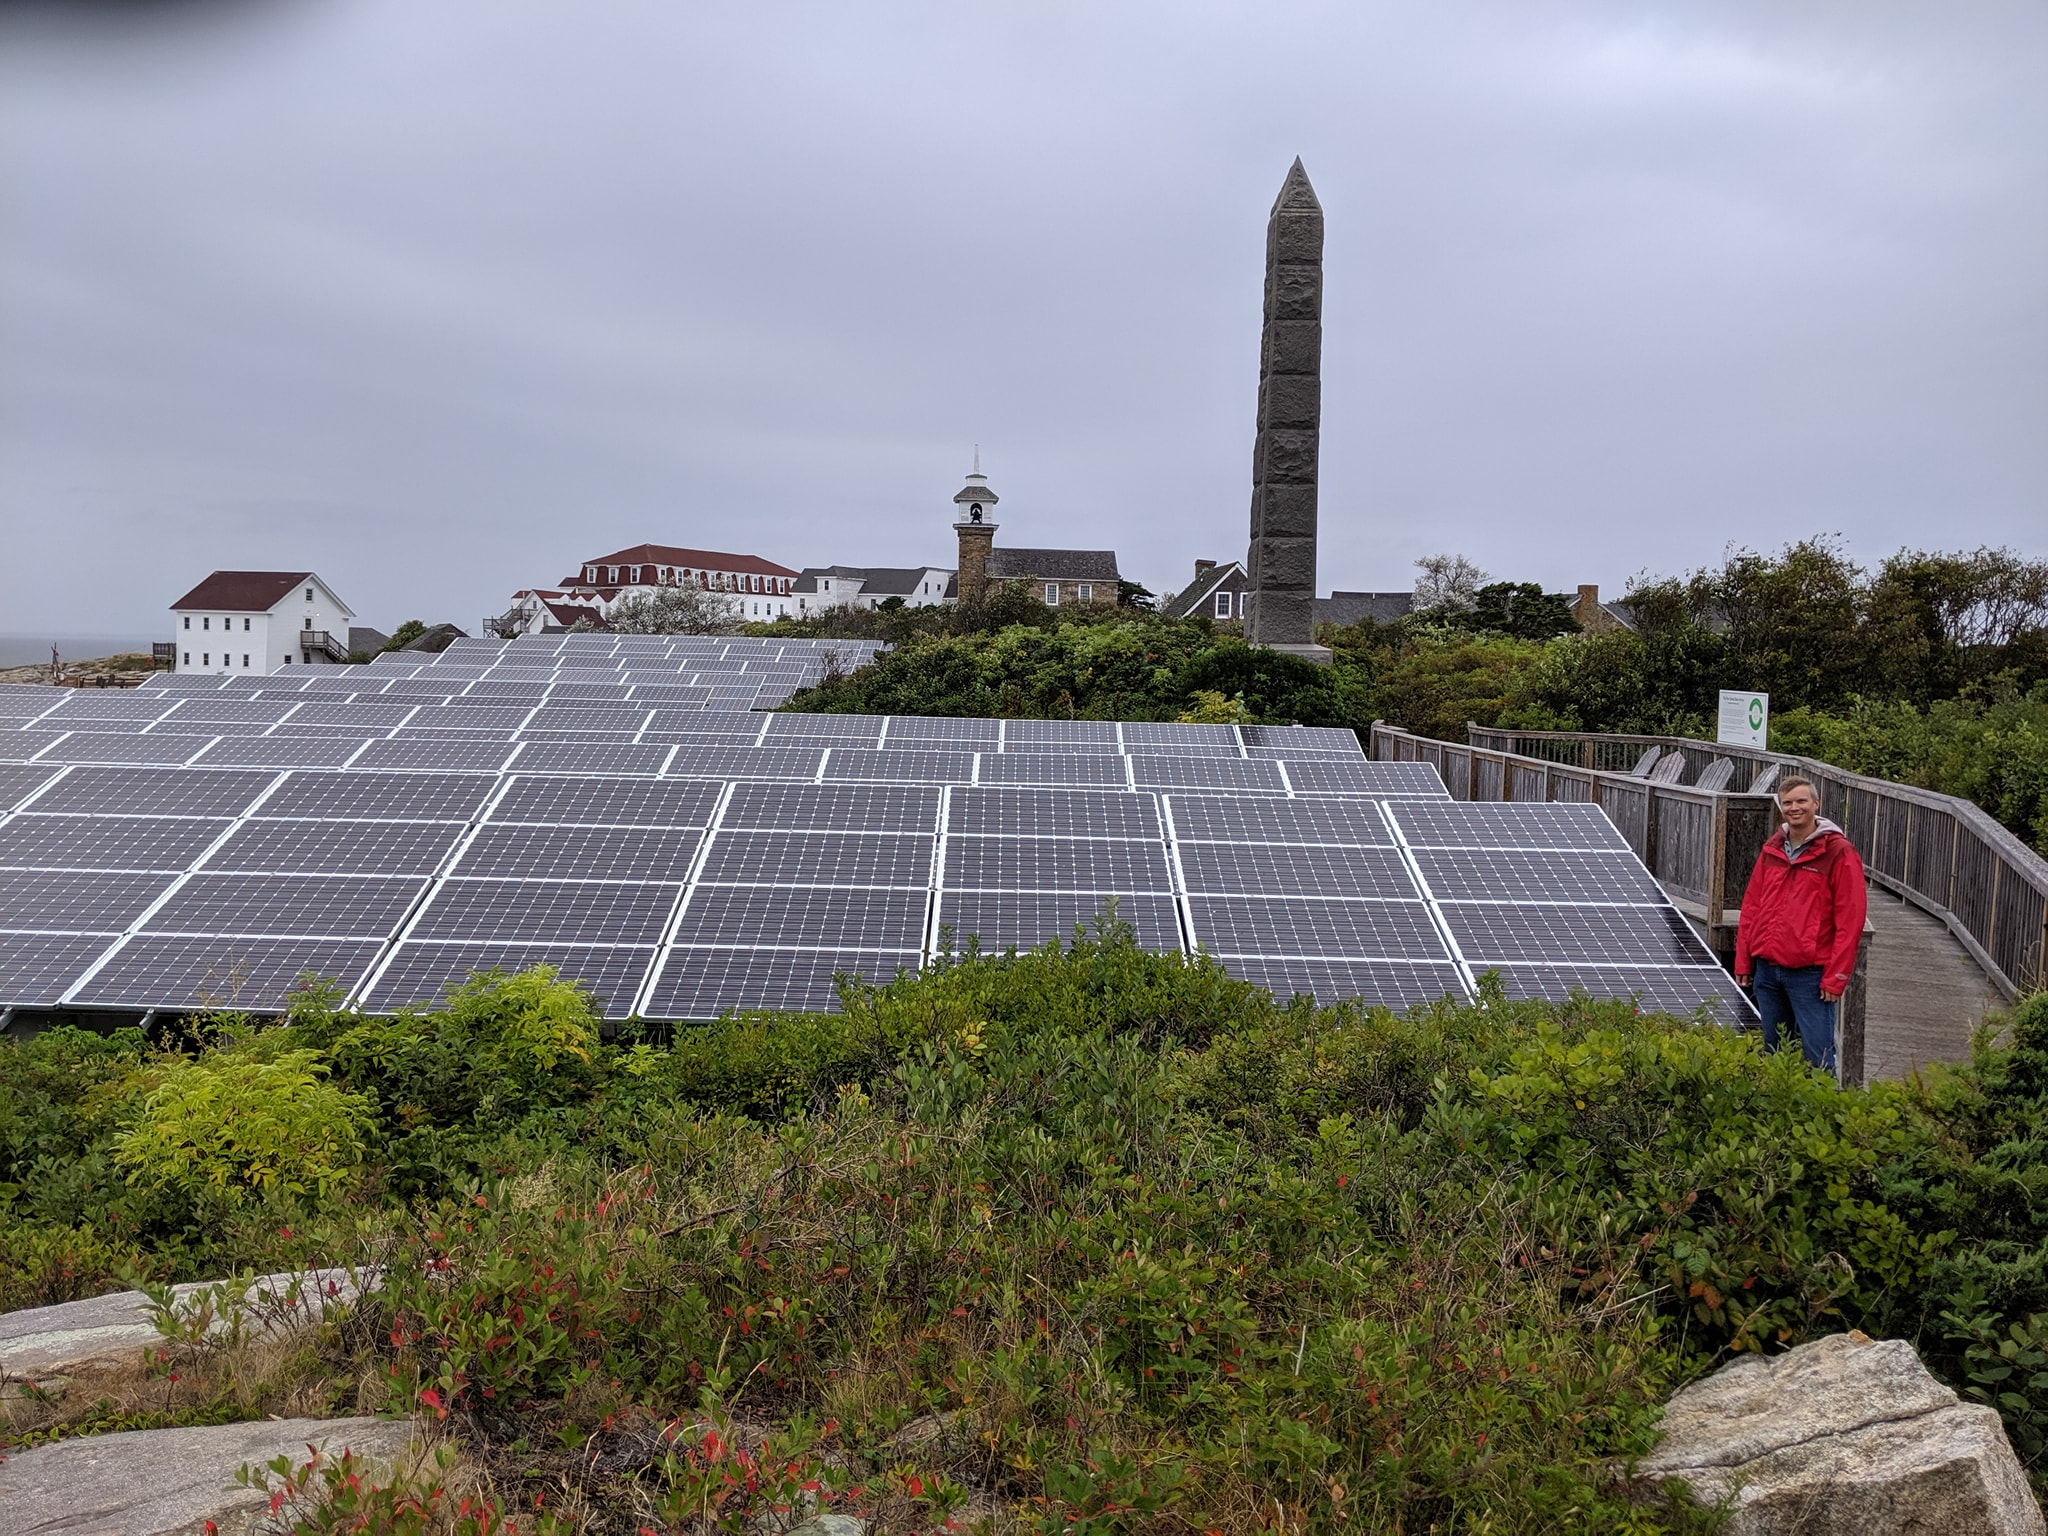 Aaron and many solar panels